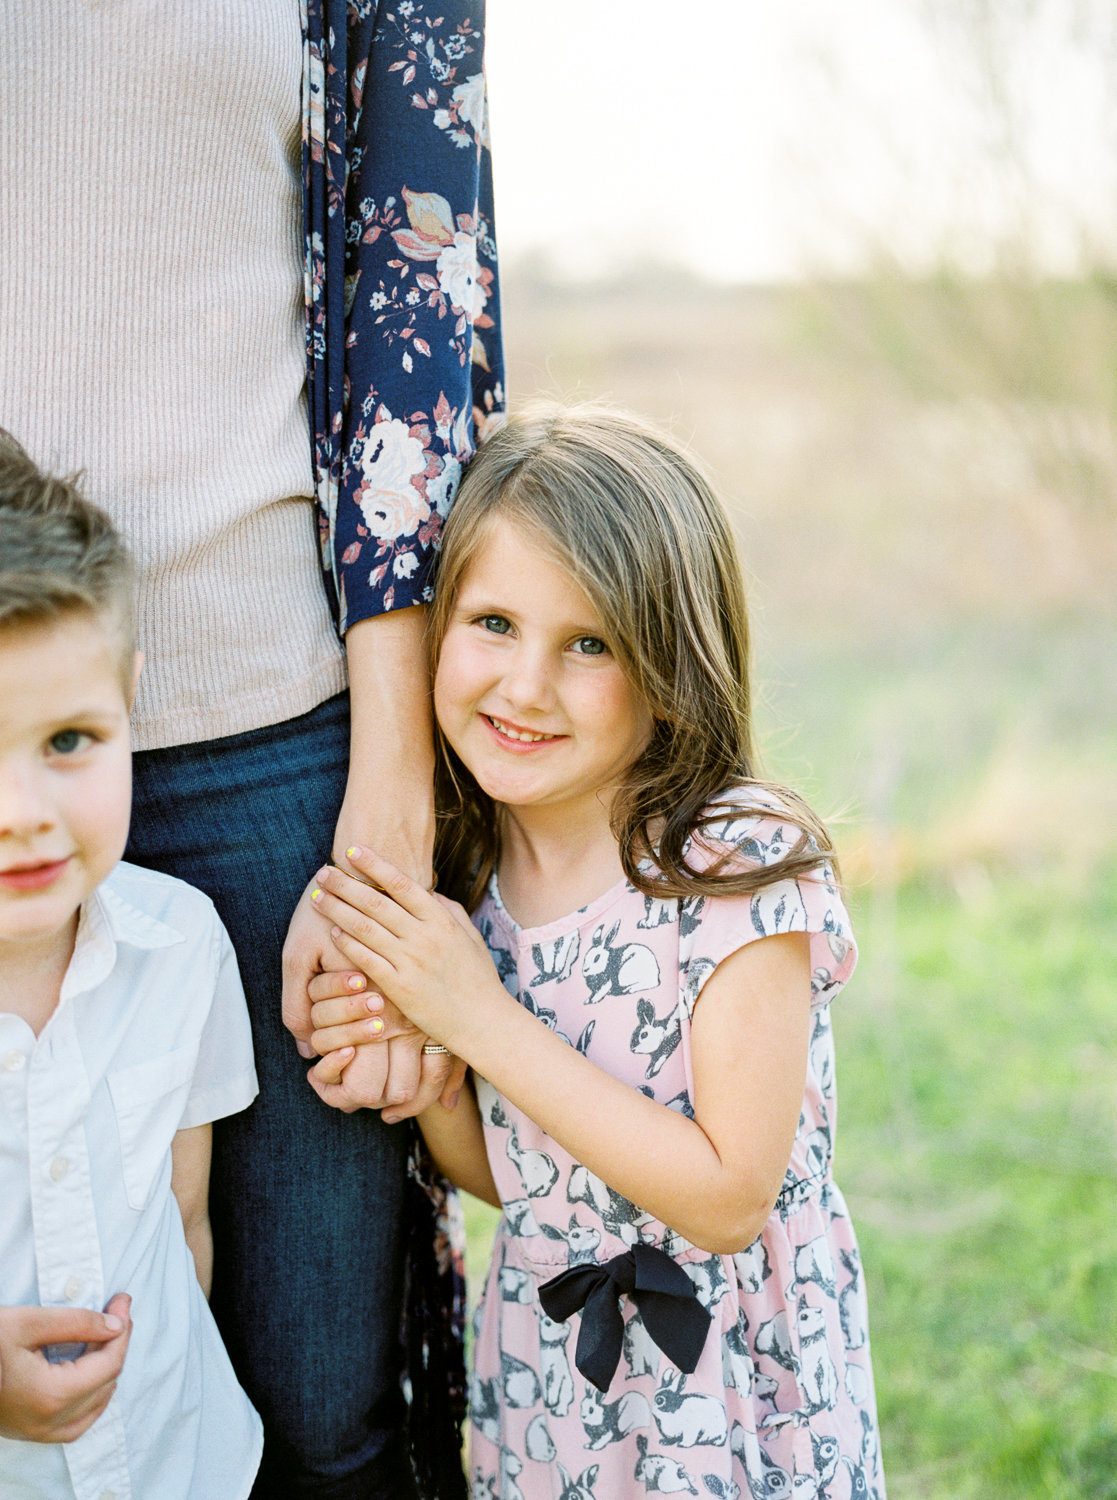 Tullos_ChelseaQWhitePhotography-5